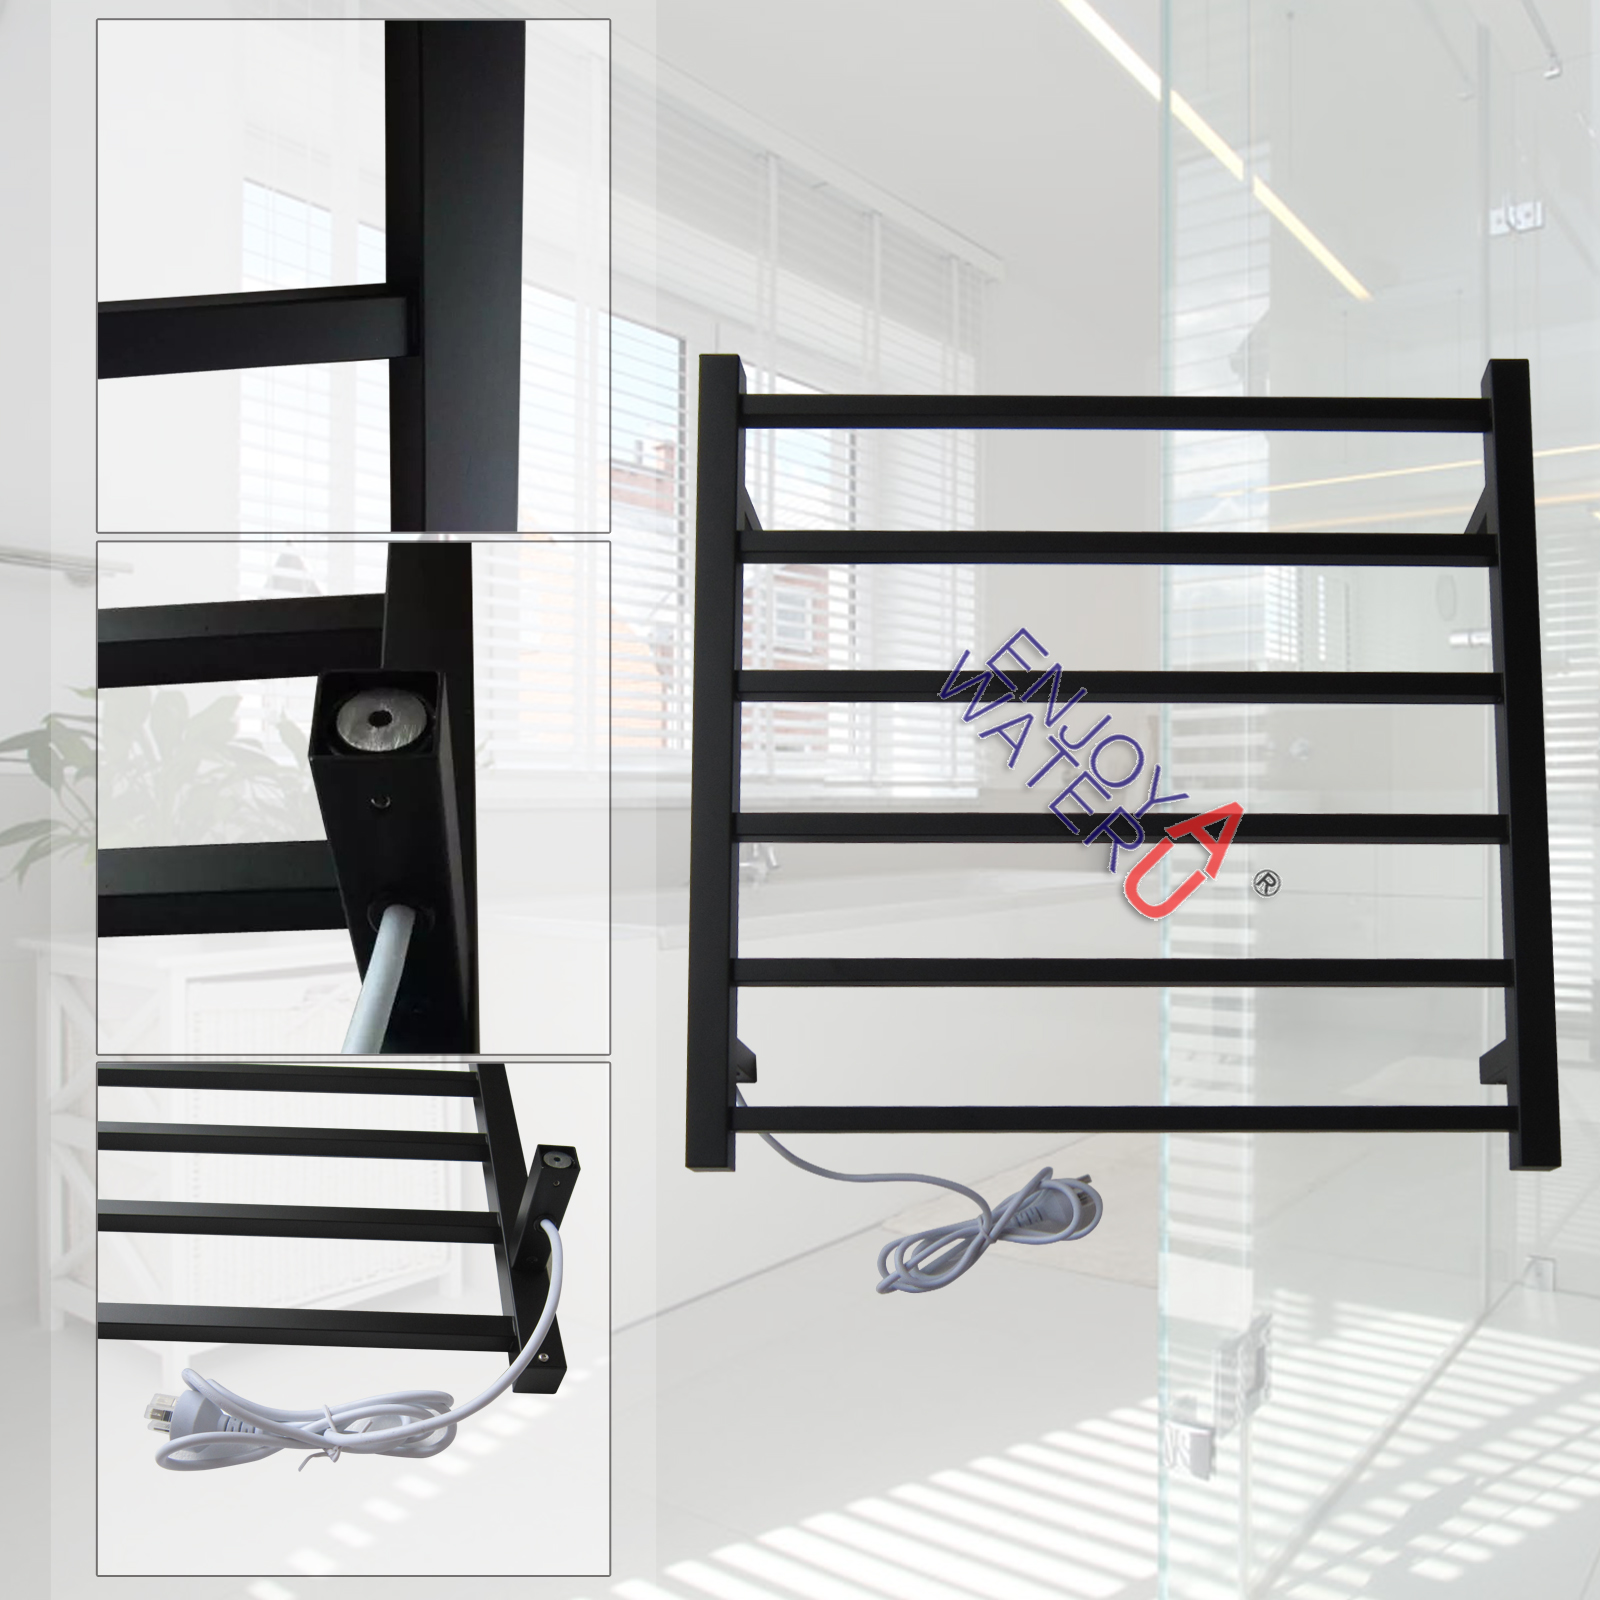 Big Size Stainless Towel Warmer Heated Towel Rack: Gama Bath Square Electric Heated Towel Rack Warmer Rail 6